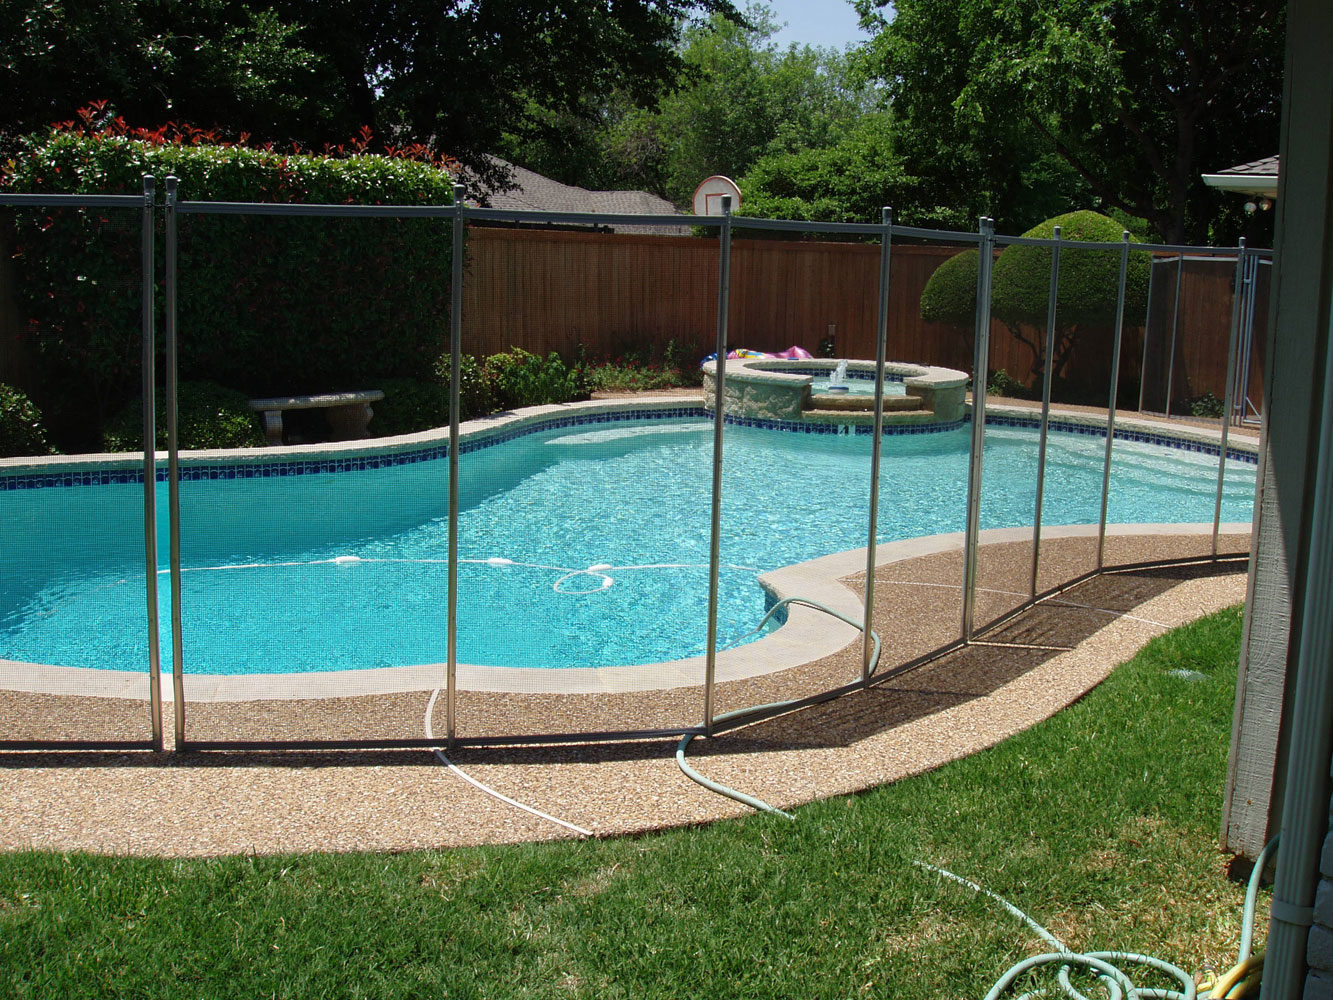 Cost of a pool fence In Los Angeles